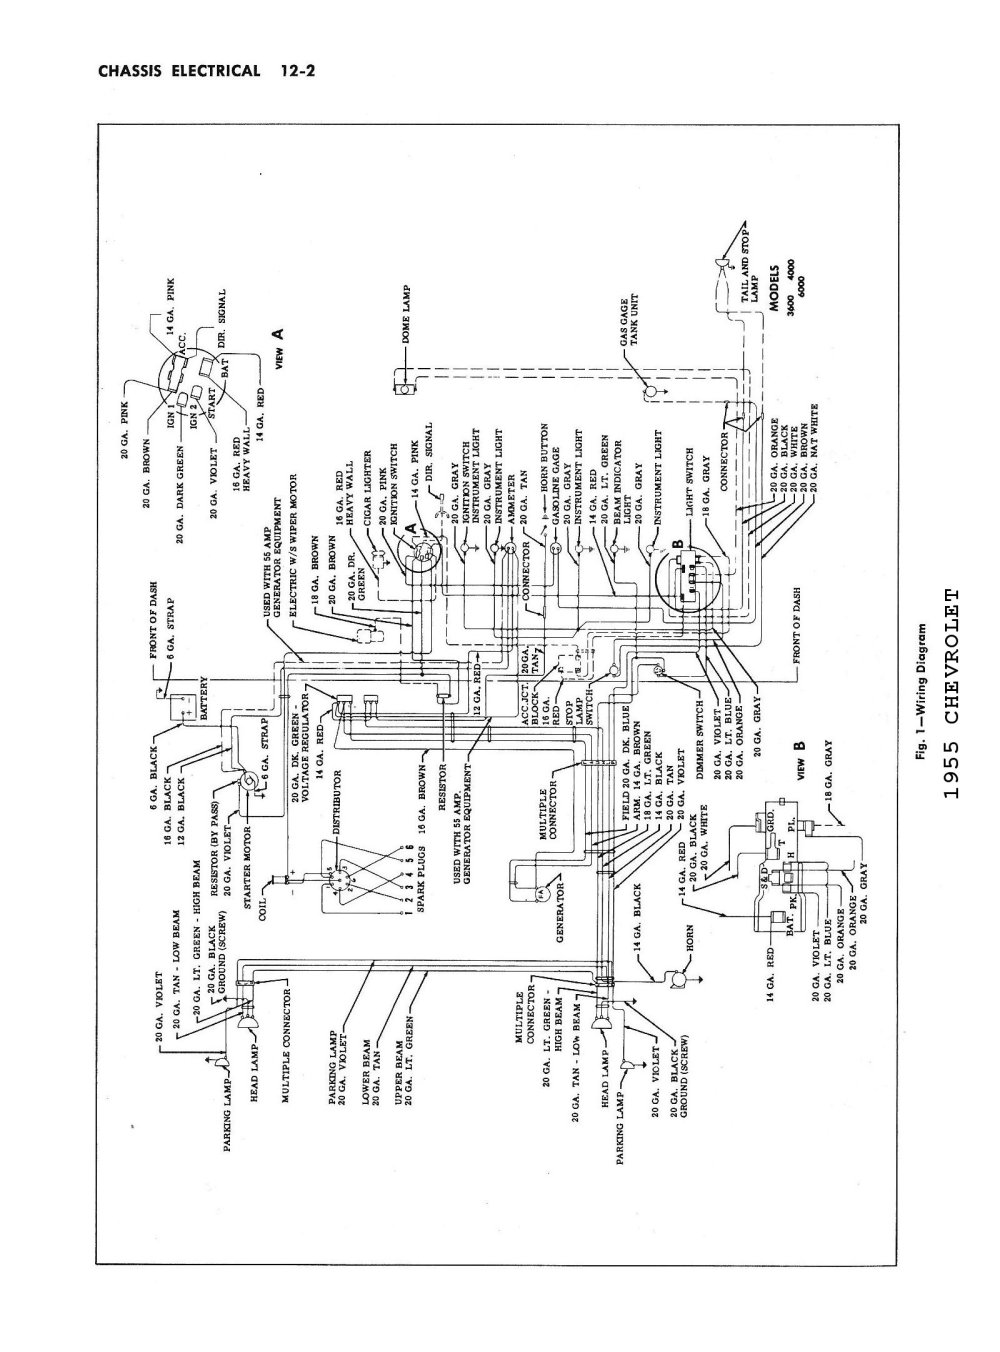 medium resolution of 1959 gmc truck headlight switch wiring wiring diagram expert chevy truck headlight switch wiring diagram free picture